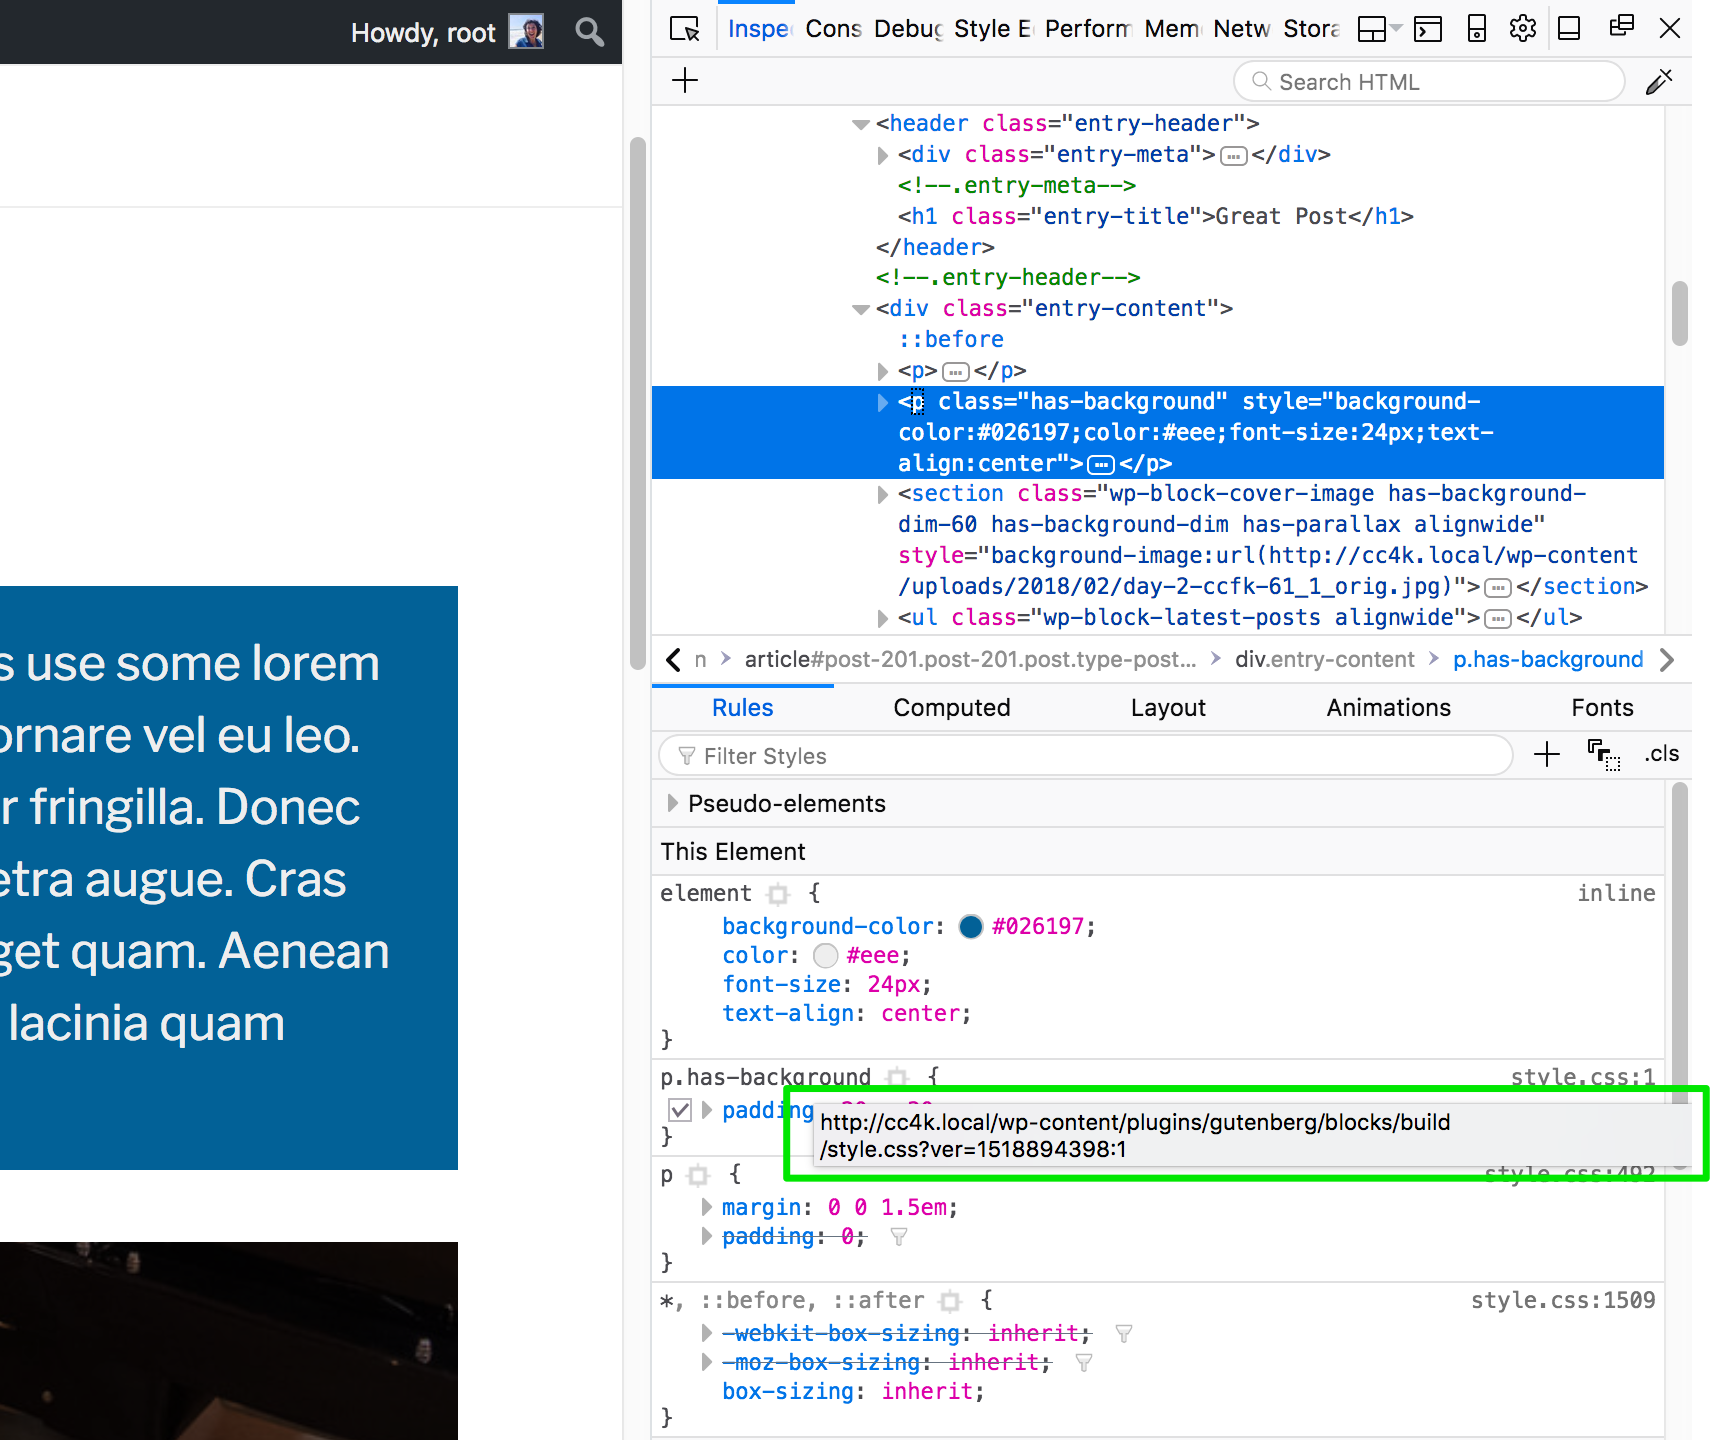 A view of the style inspector showing a path to a stylesheet from the Gutenberg plugin folder